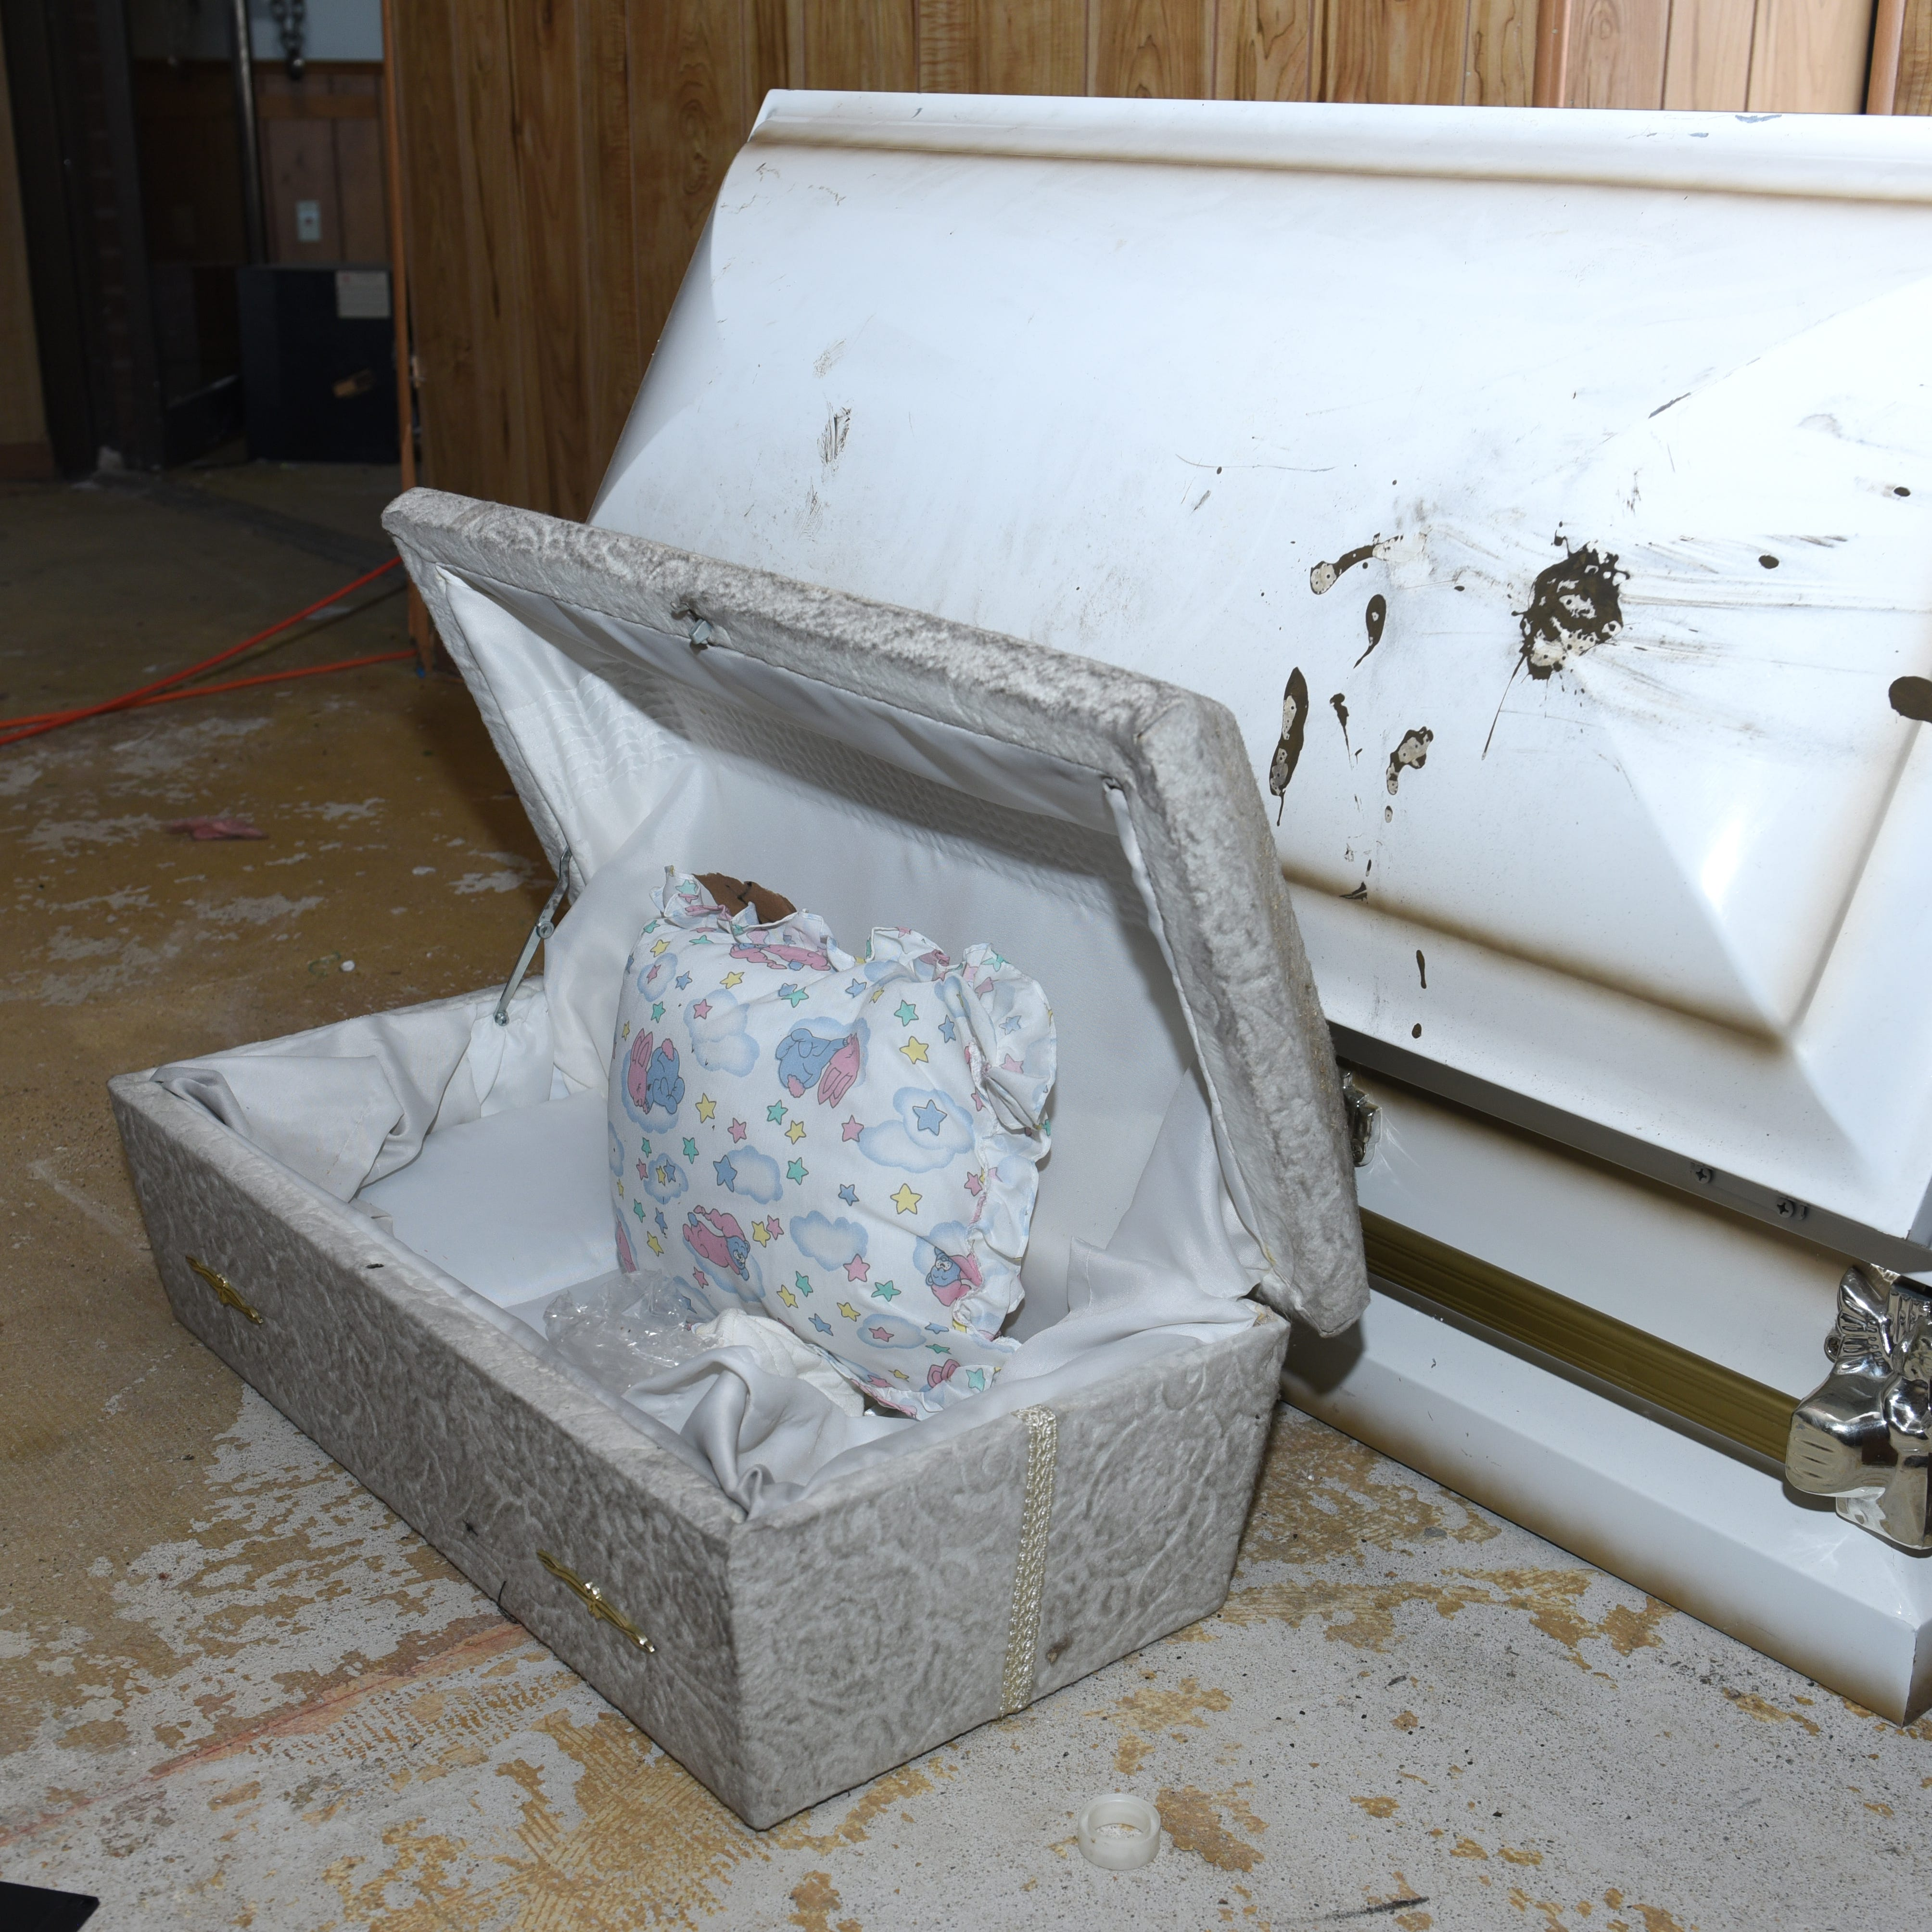 Editorial: More rigorous oversight needed of funeral home